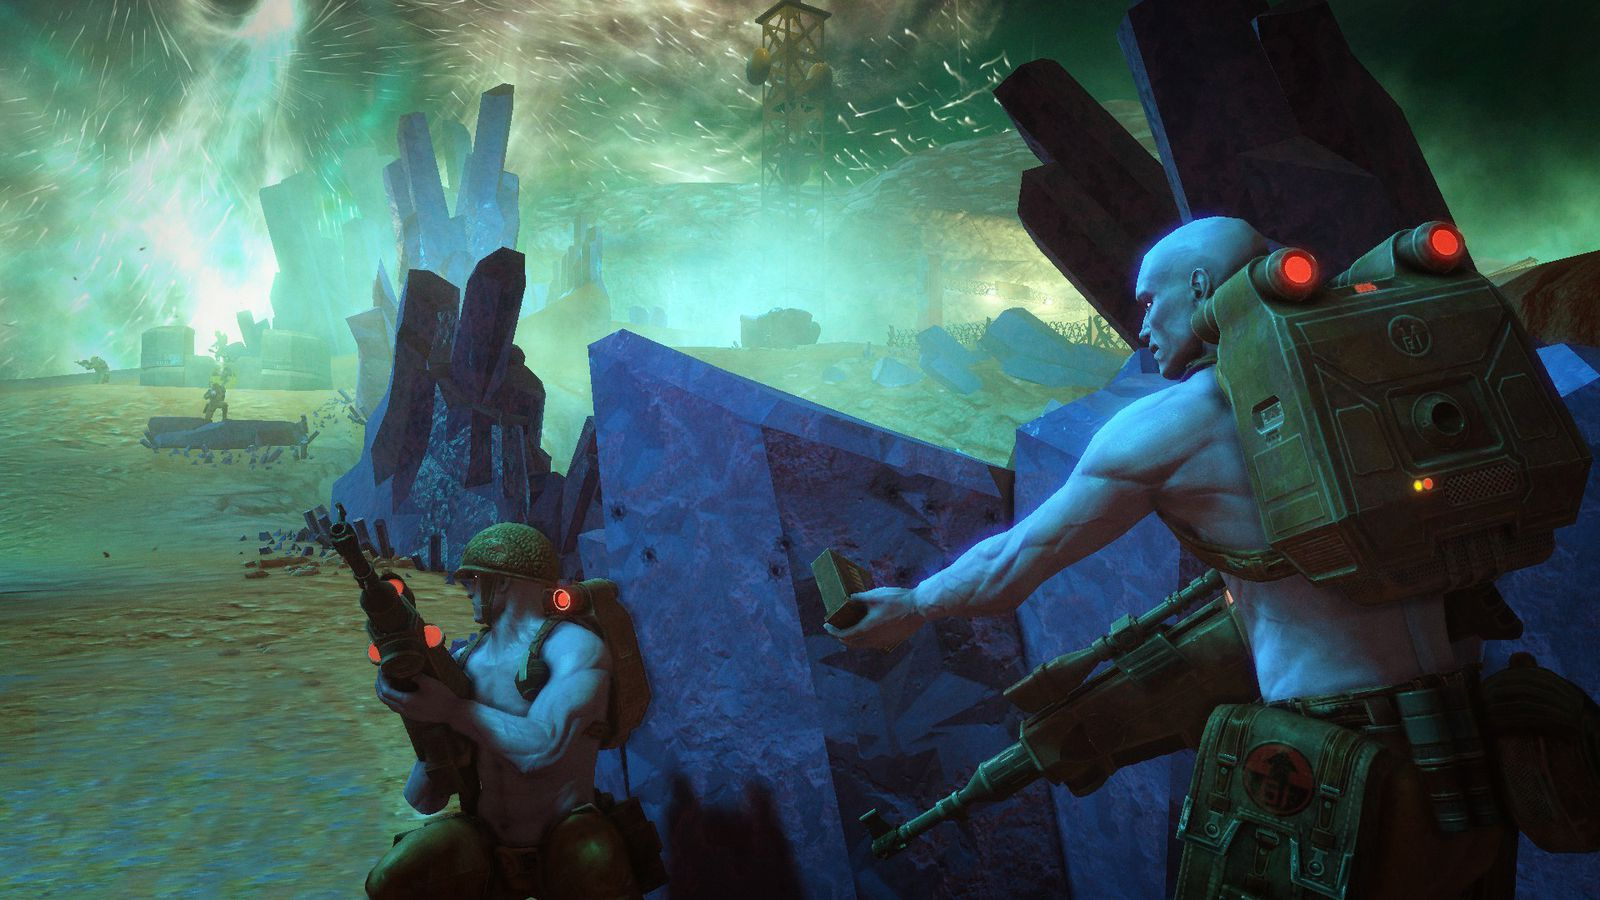 There's plenty of opportunity for Squad Based mechanics in this Third Person Shooter as well